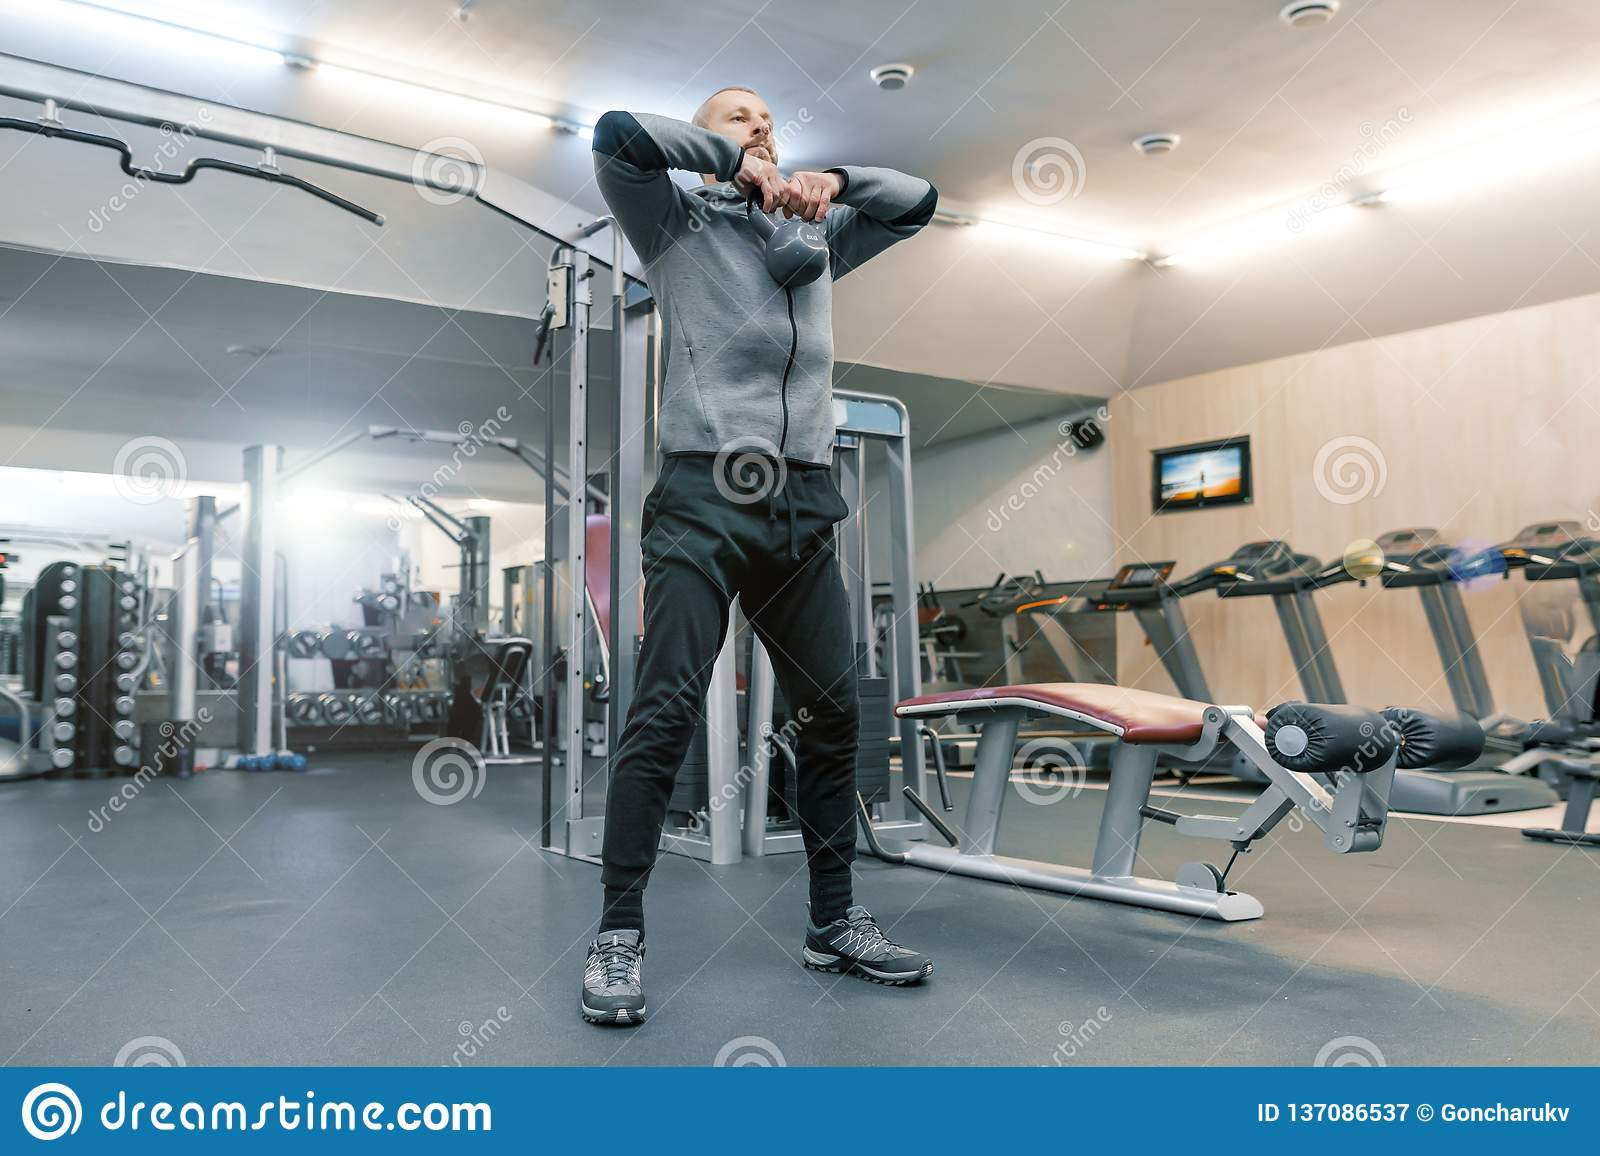 Adult handsome bearded man doing physical exercises in the gym. Sport rehabilitation, age, healthy lifestyle concept